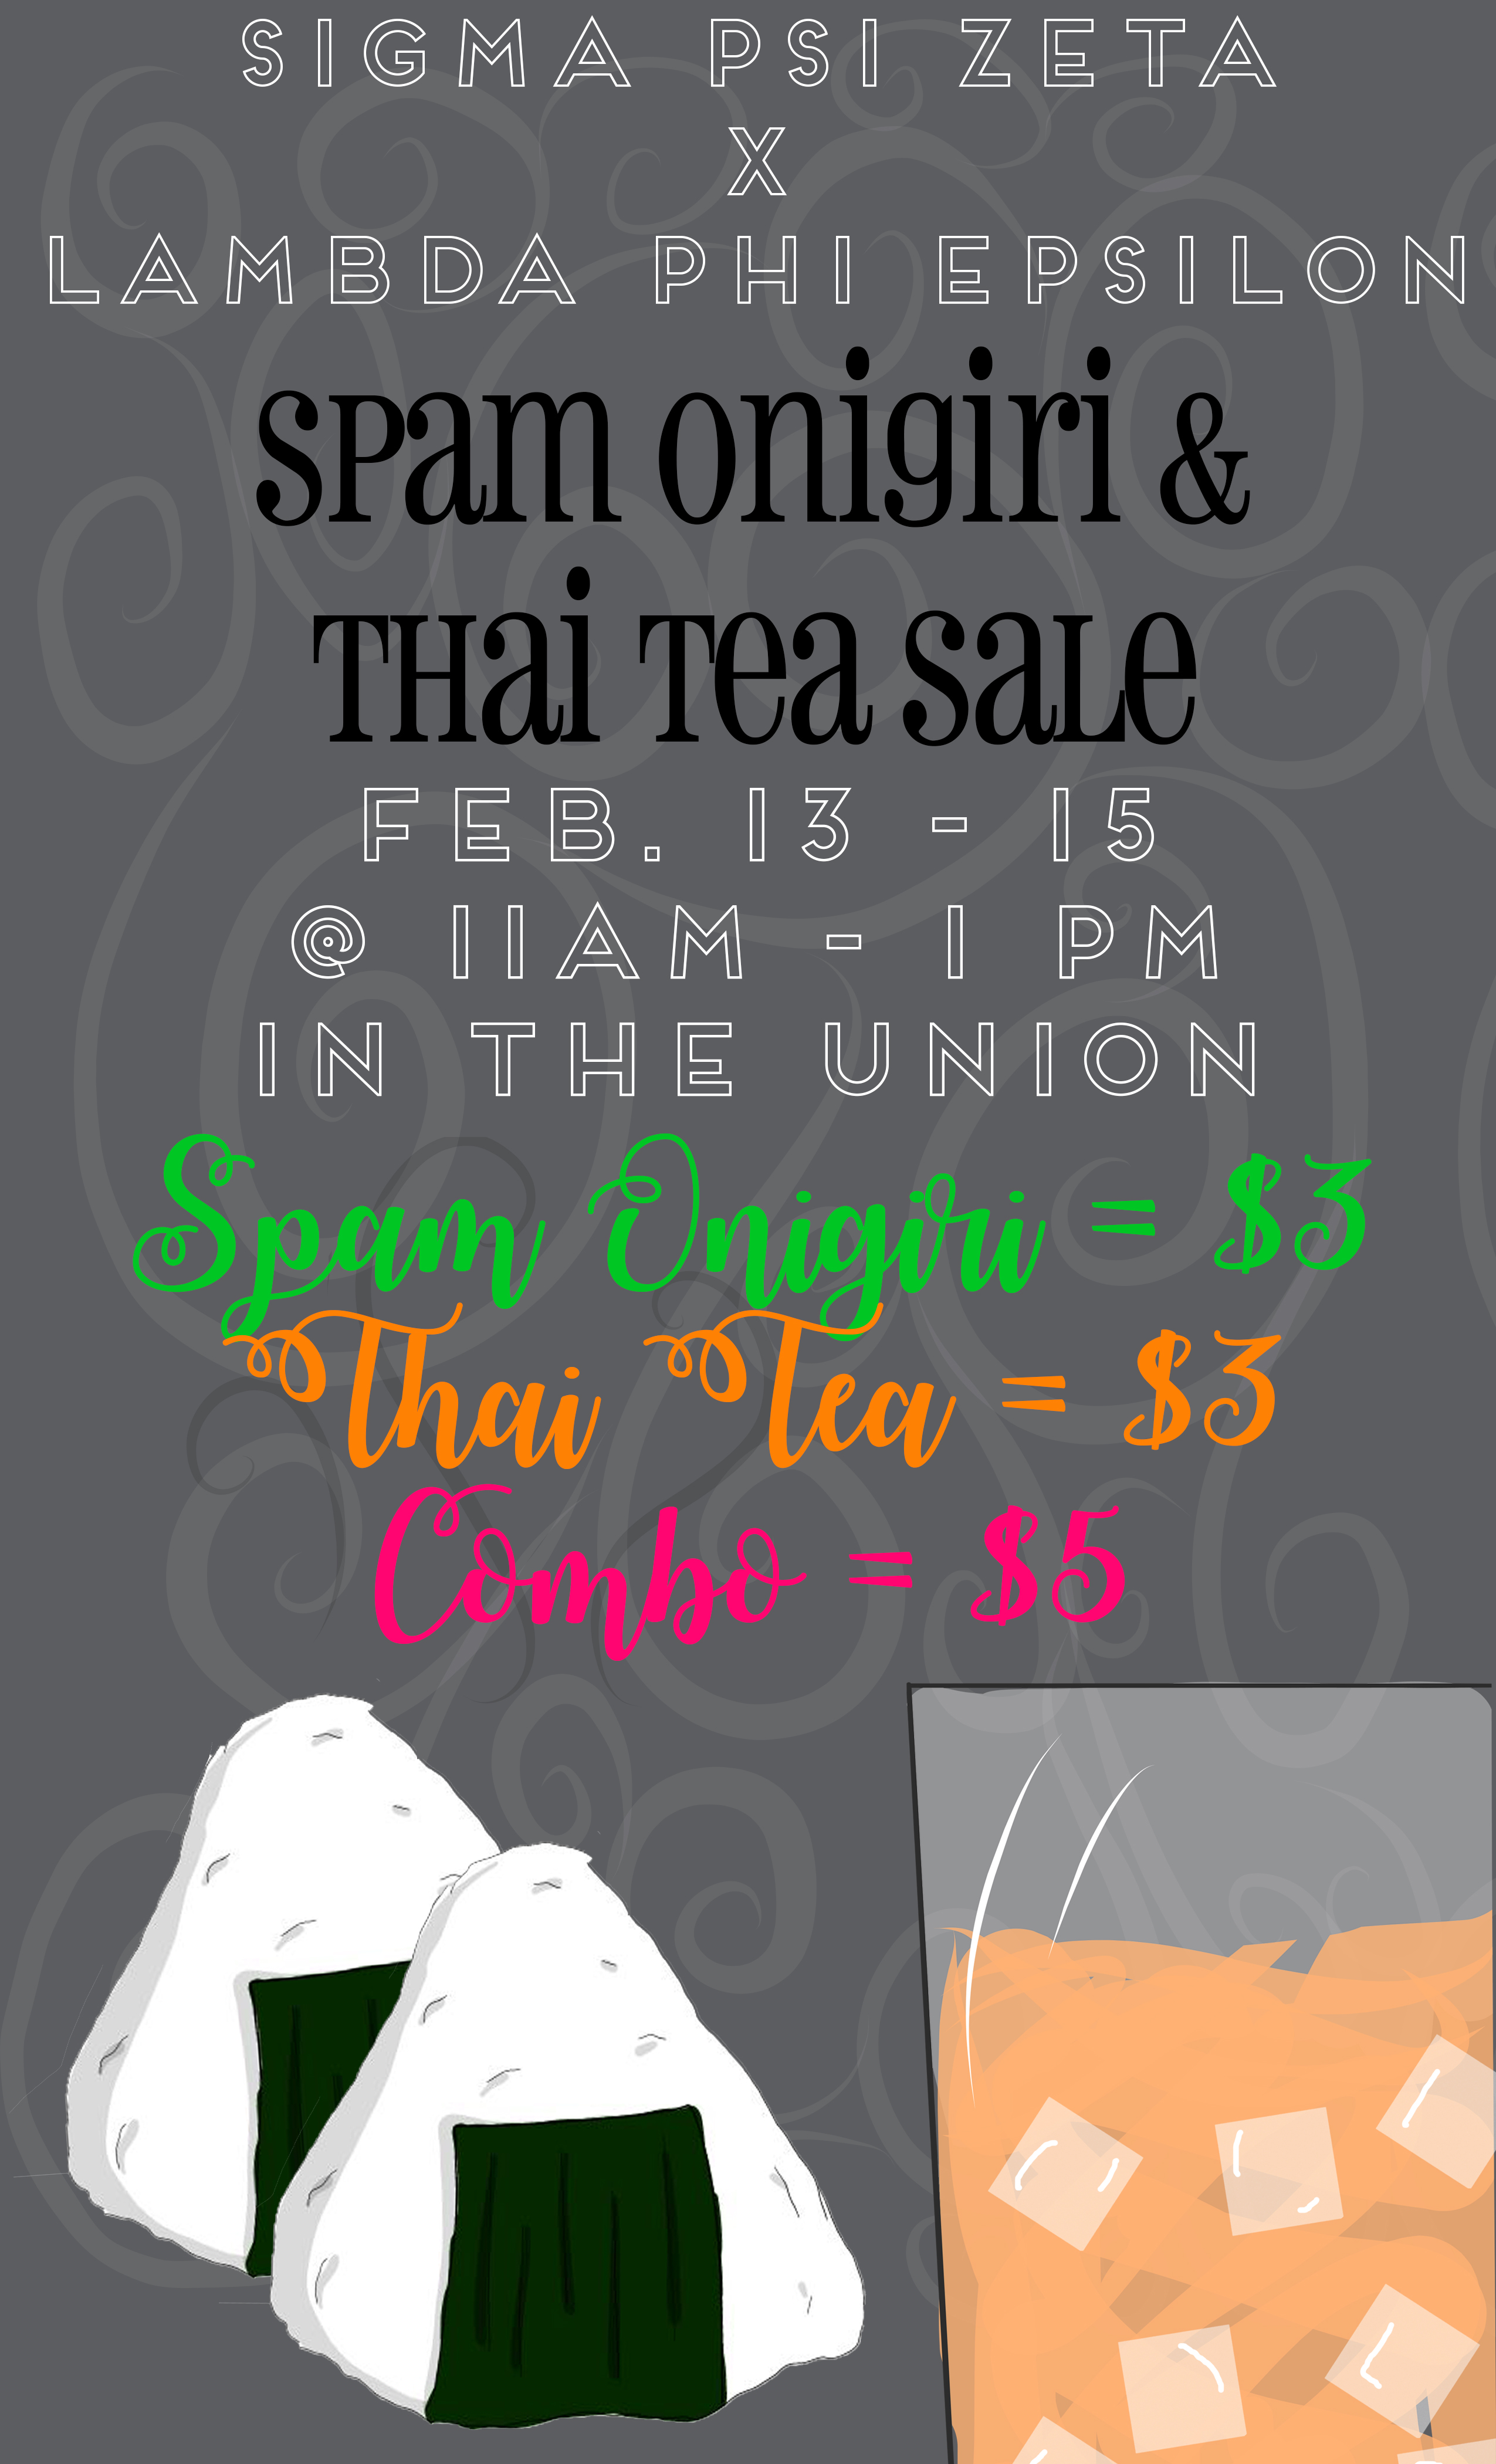 Spam Onigiri and Thai Tea are $3 each or $5 for both.